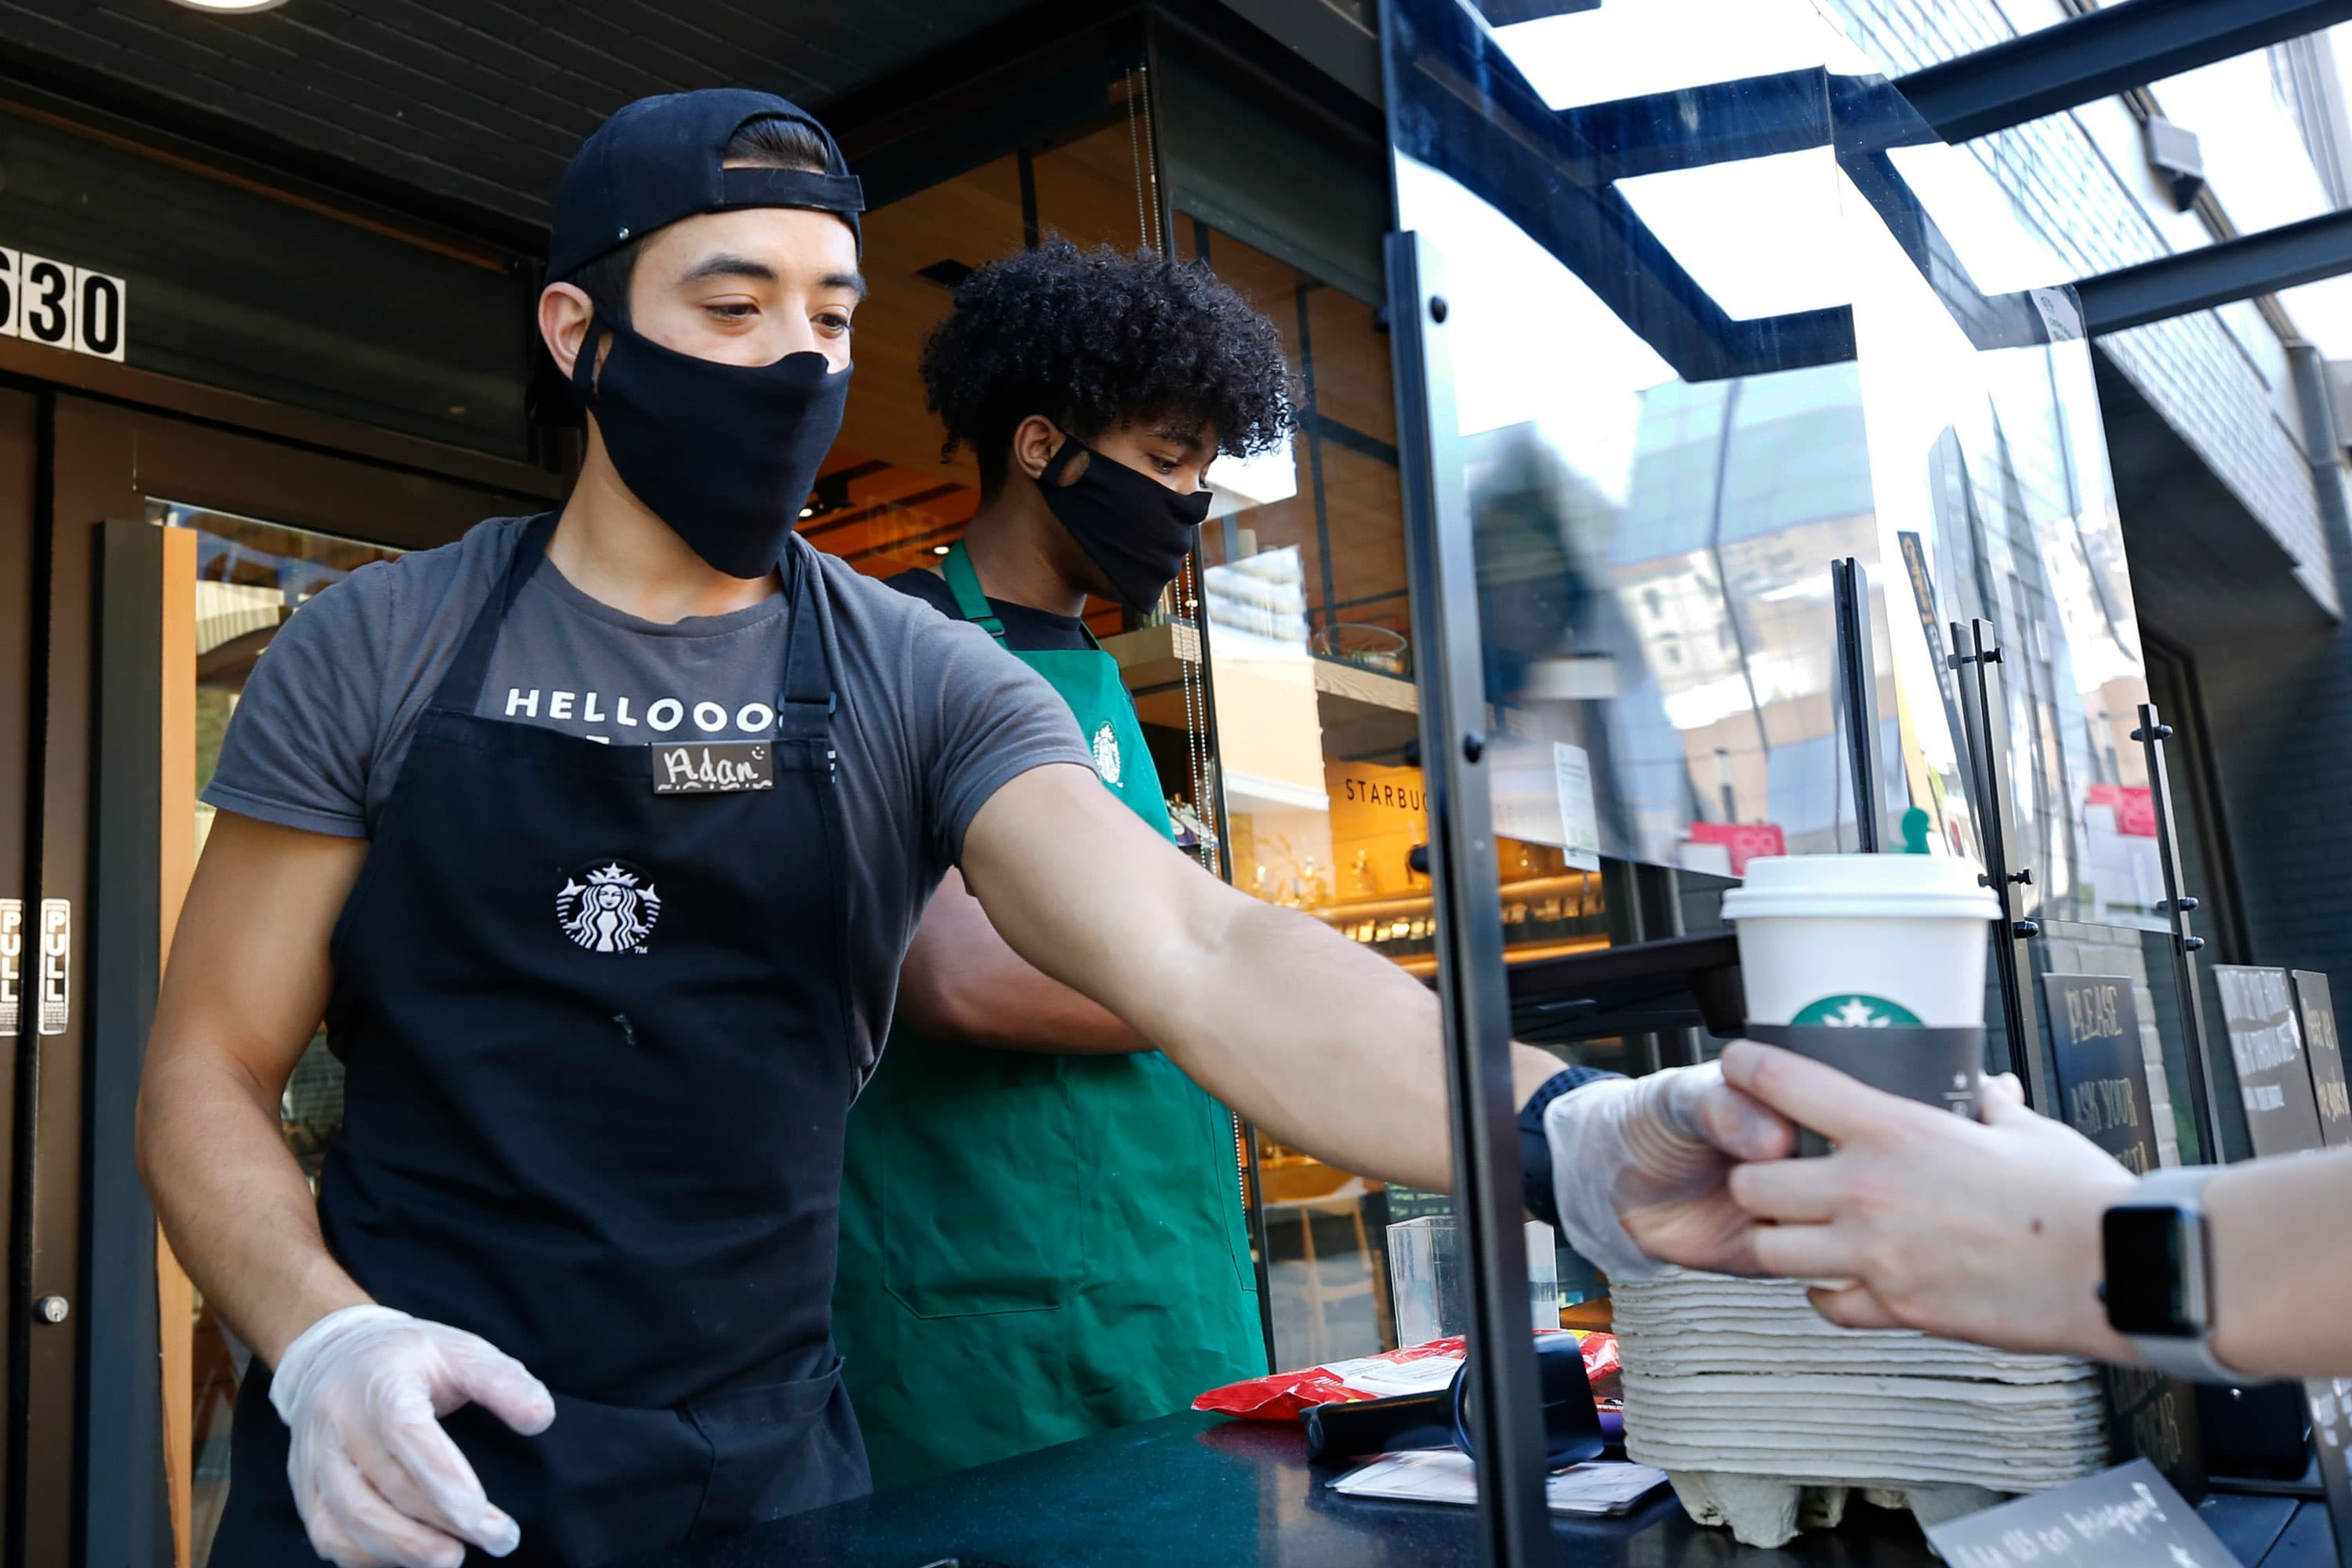 Covid pandemic made low-wage workers essential, but hard-earned gains are fleeting